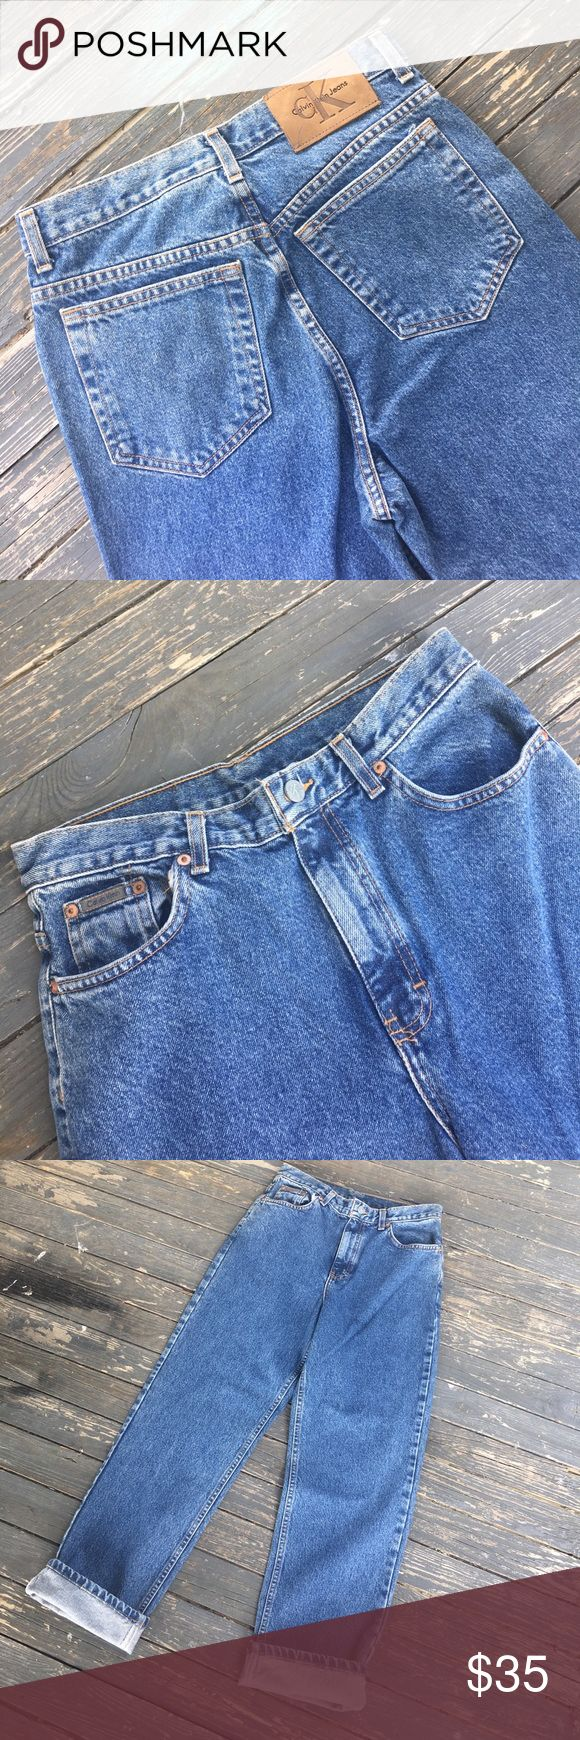 "90's  H/W Calvin Klein Jeans Now Trending .....hard to find vintage,  HIGH WAIST, Leather tag, Jeans, by CALVIN KLEIN❗️These are 100% Cotton and factory tagged a size 10.  For a perfect fit, measured laying flat:  Front Rise 12"", Waist 15"", Hips, 20"", and Inseam (Uncuffed) 29"".  NOT  ""Mom"" jeans  in 2017 🎯These are in EUC and ready to rip, roll, or distress for your personal style❗️ * From a smoke free home. Calvin Klein Jeans"